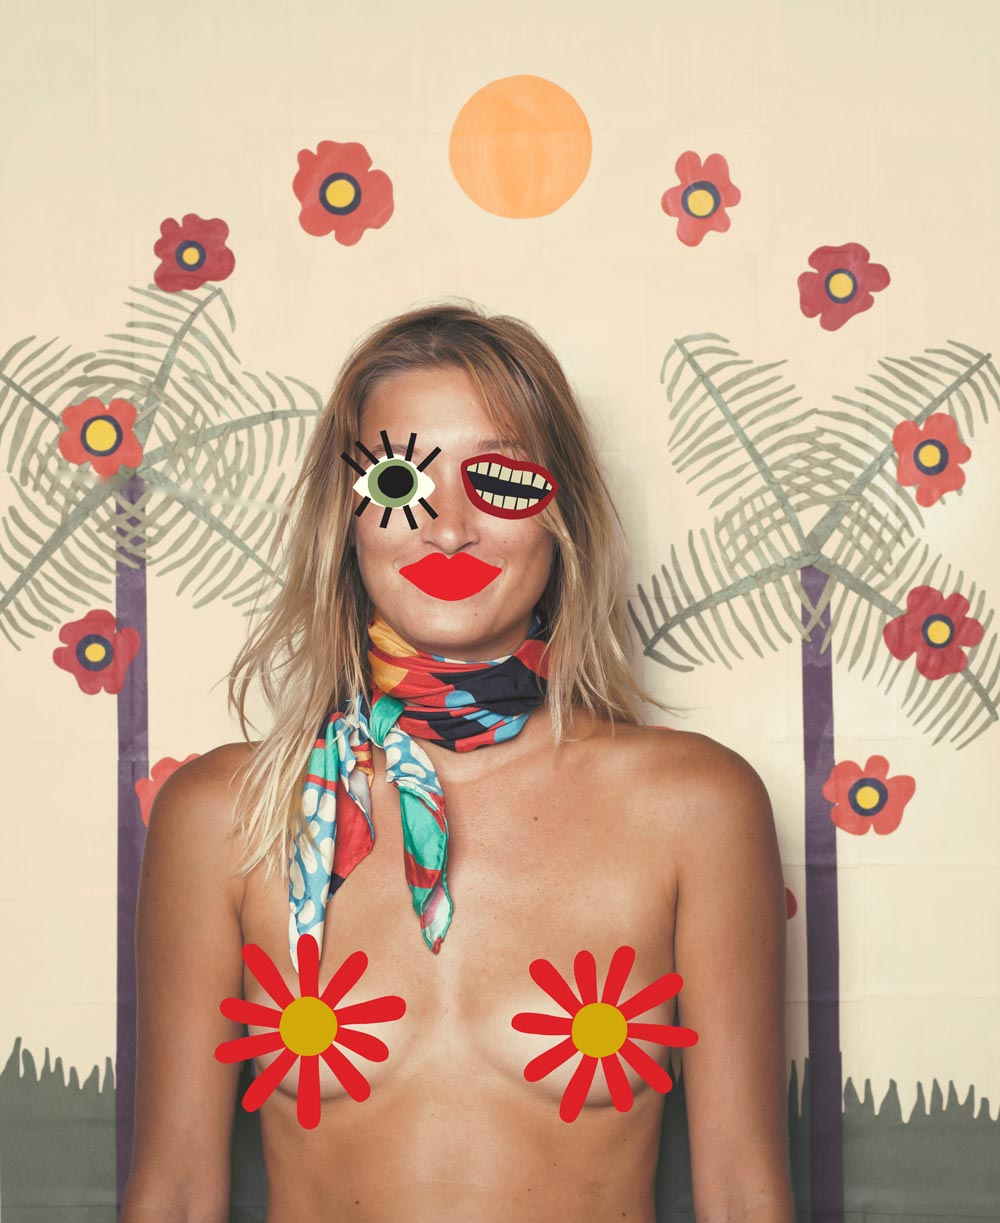 ELOI scarves, made from paper cut-out designs.